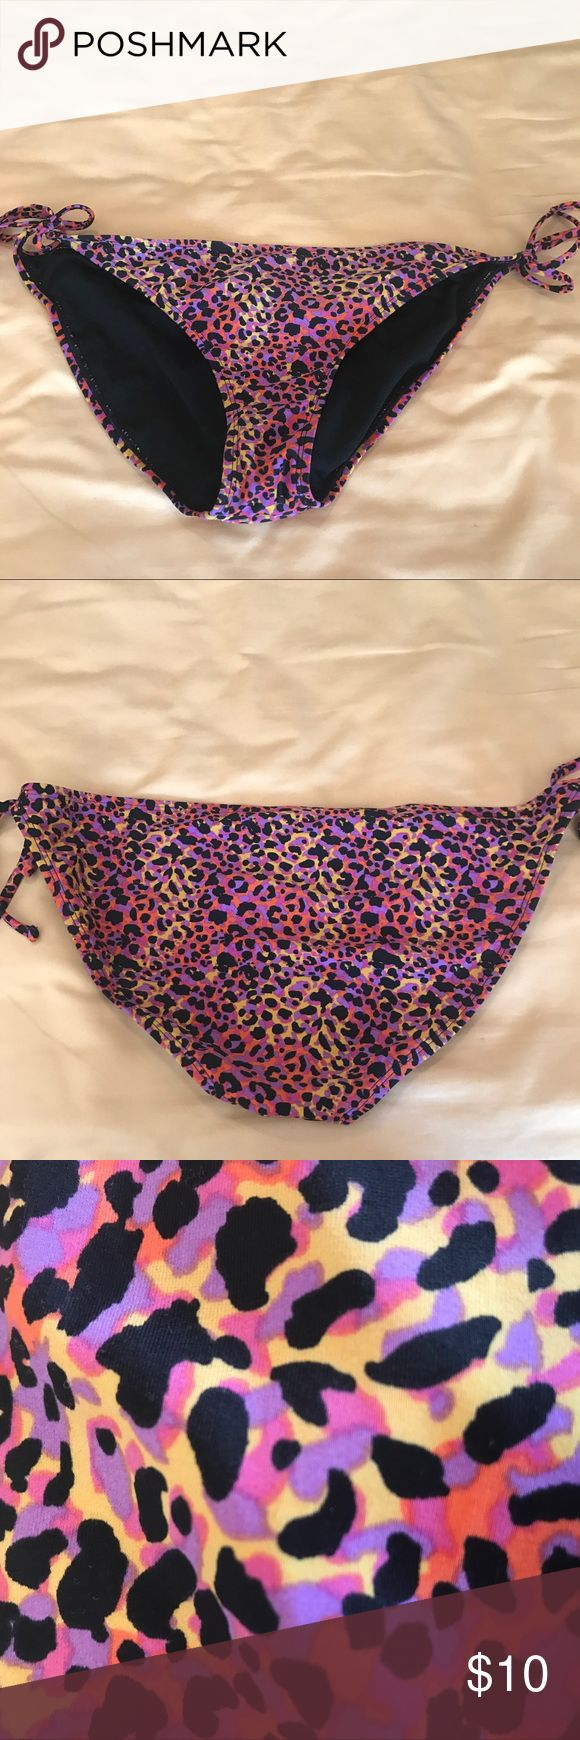 Leopard print drawstring bikini bottoms Multi colored leopard print drawstring bikini bottoms; too big for me now but was very flattering and try to size; looked great with solid black or solid matching colored top! Xhilaration Swim Bikinis